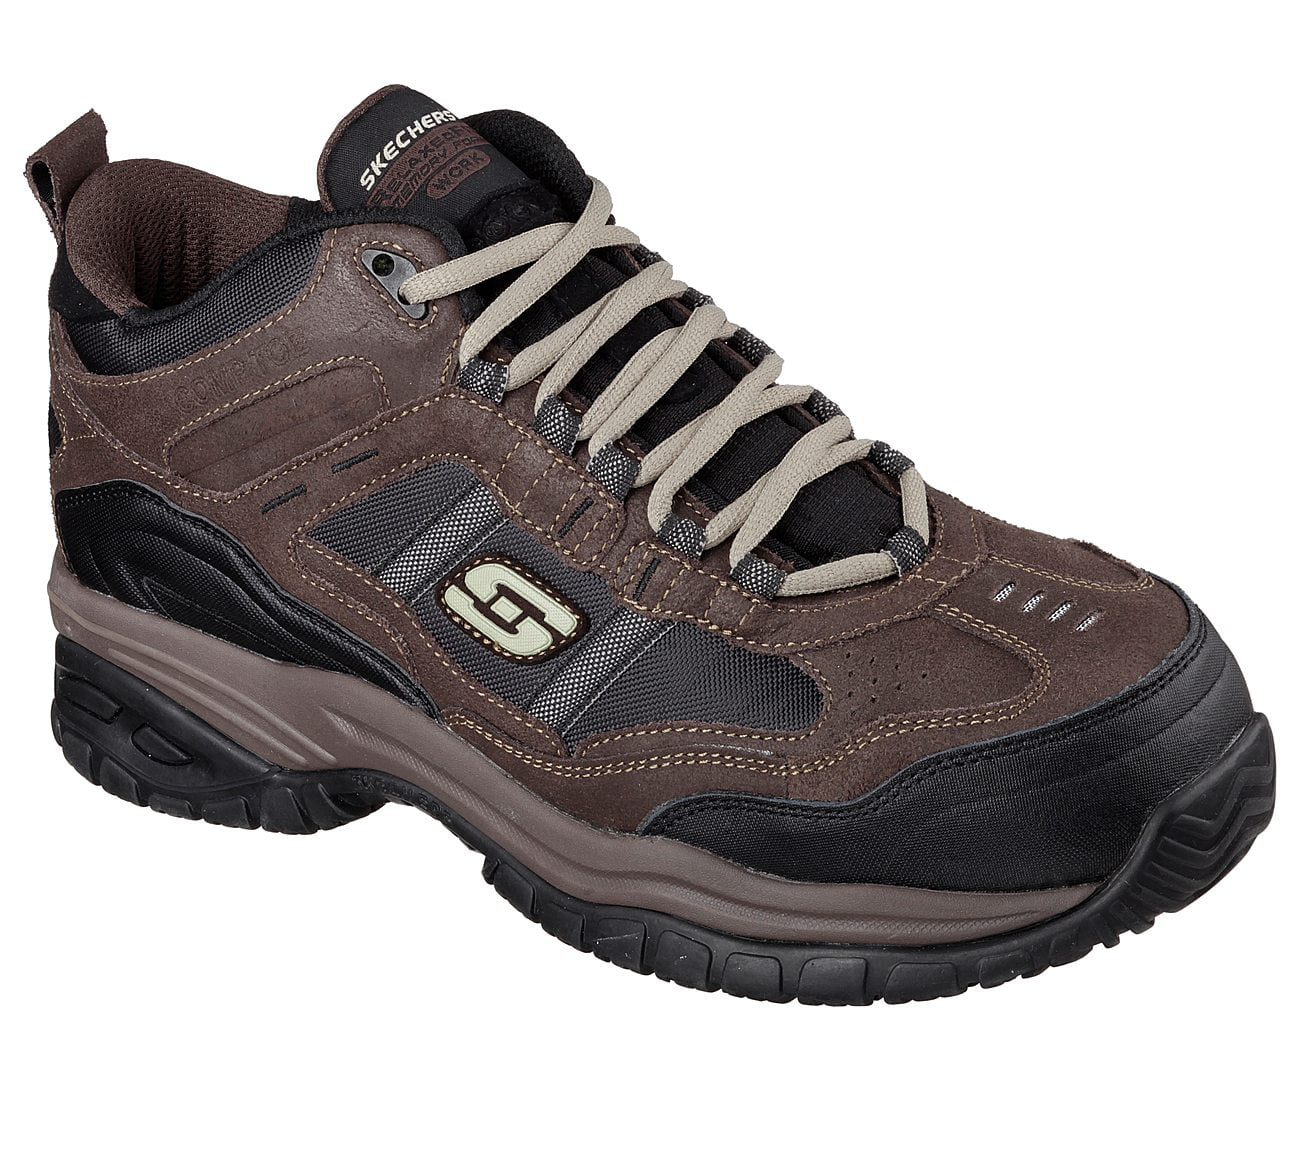 Athletic Composite Toe Safety Shoes